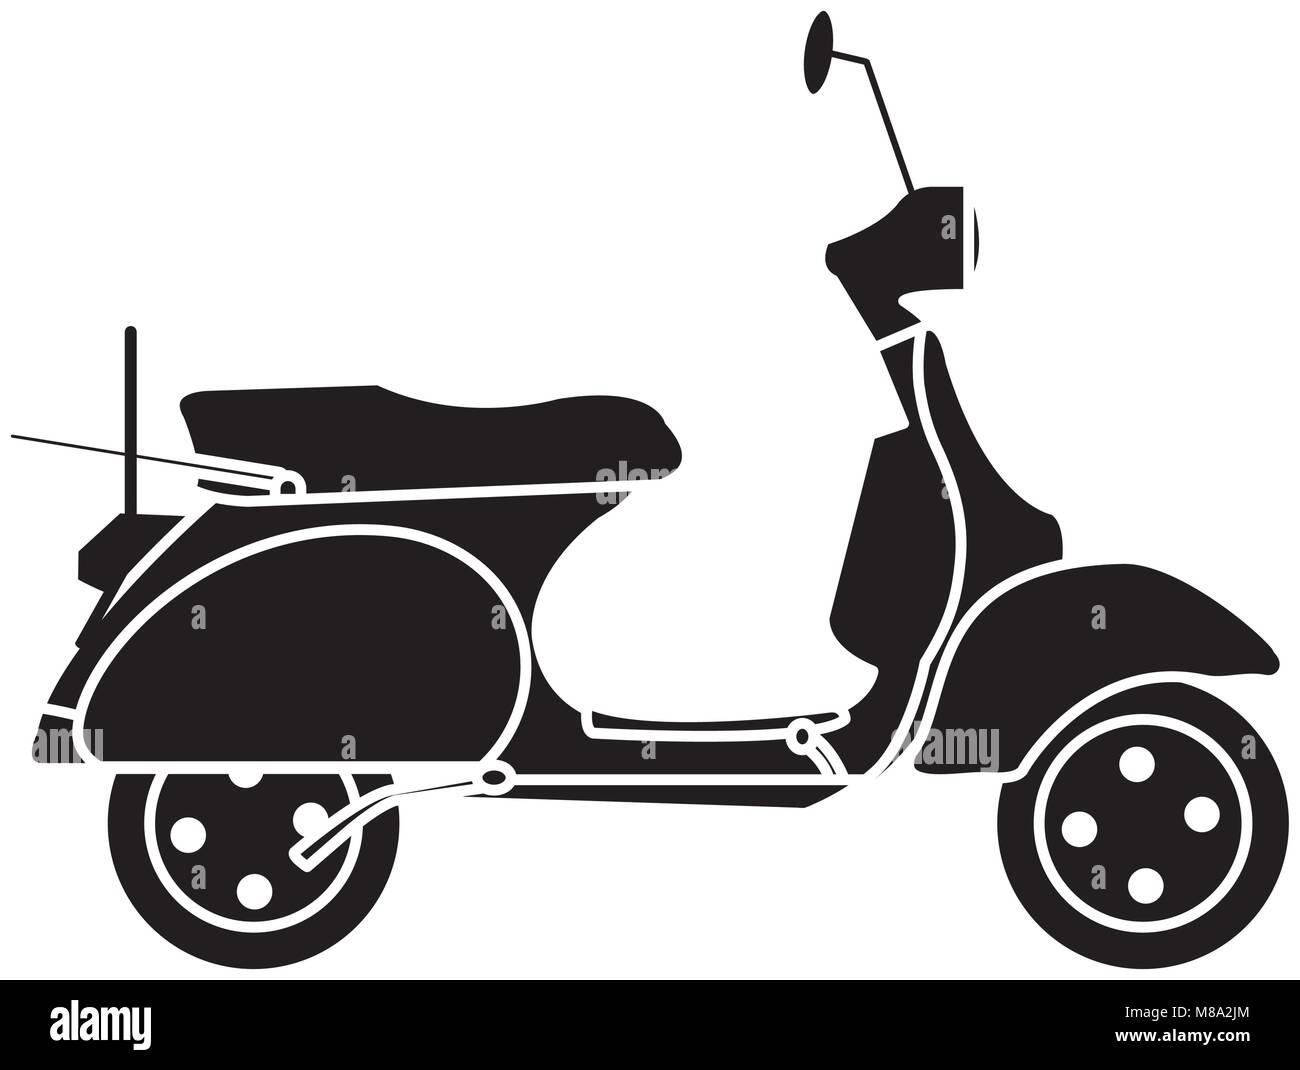 silhouette motocycle transportation travel with mirror and wheels - Stock Vector